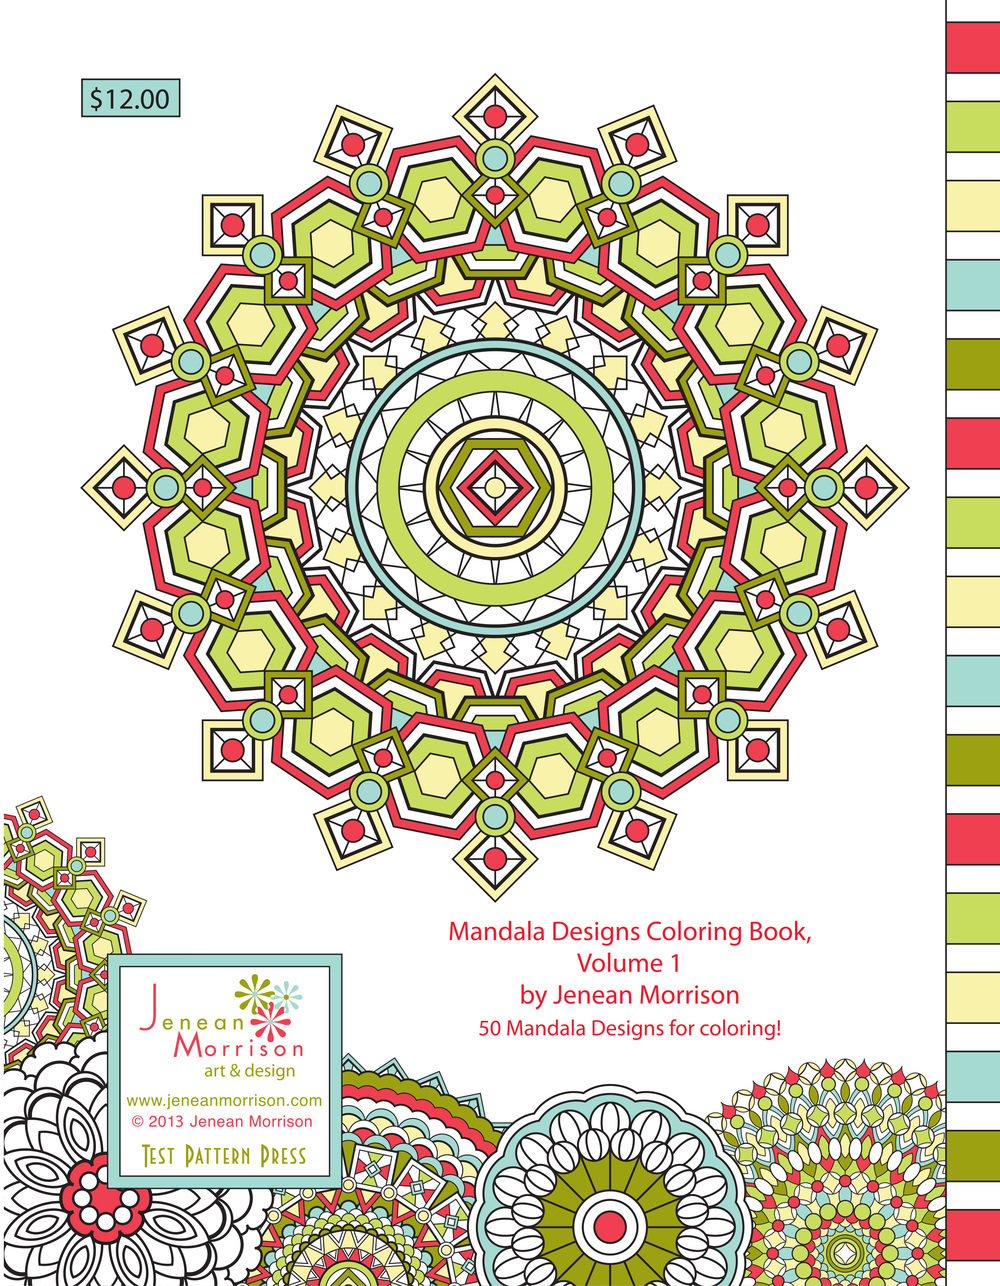 Mandala Design Coloring Book Volume 1 Jenean Morrison Art